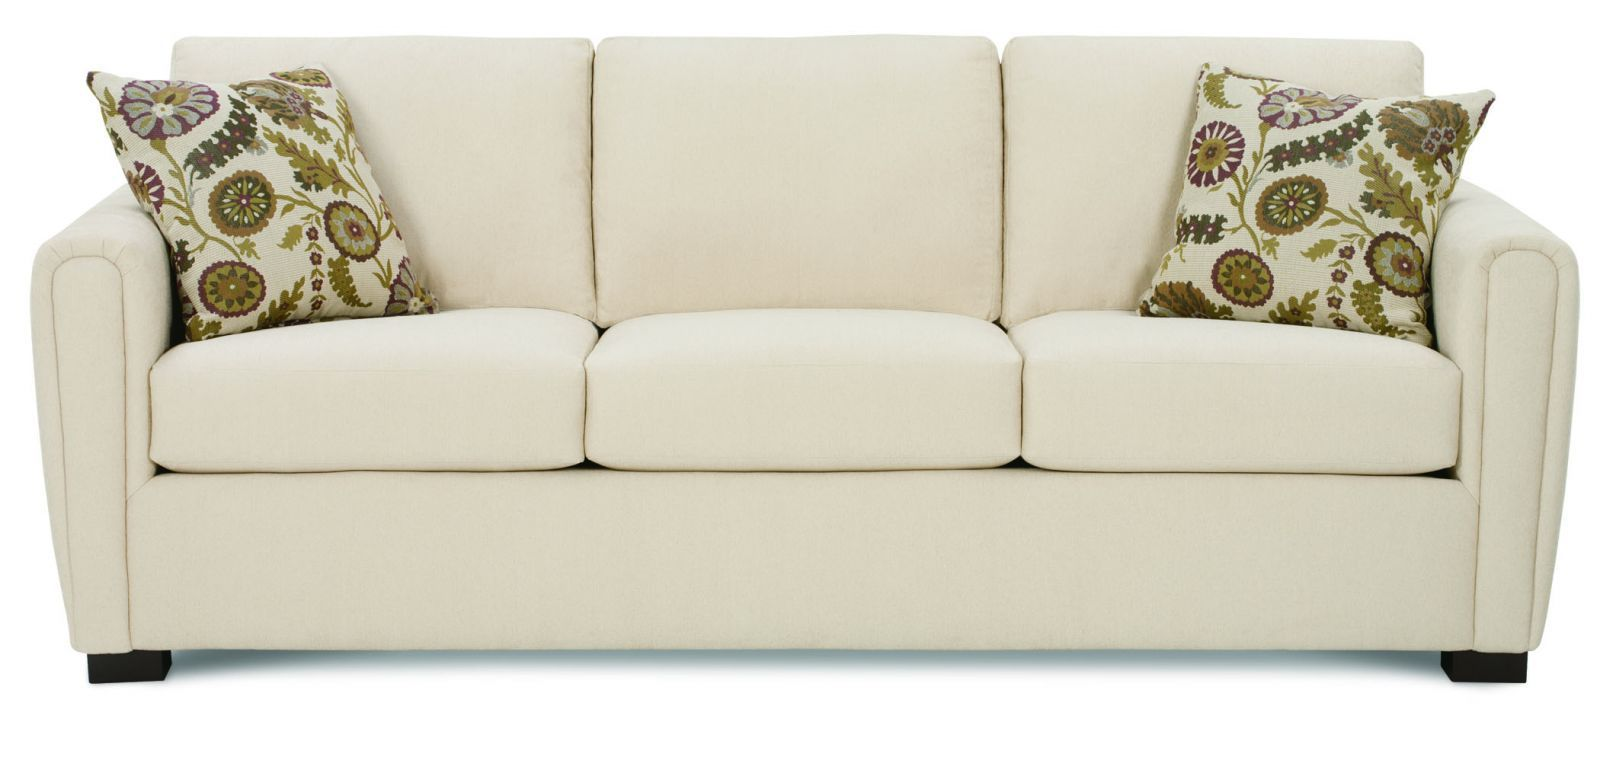 Marvelous Rowe Collections Sofas Couches Garner Sofa Sofas Gmtry Best Dining Table And Chair Ideas Images Gmtryco